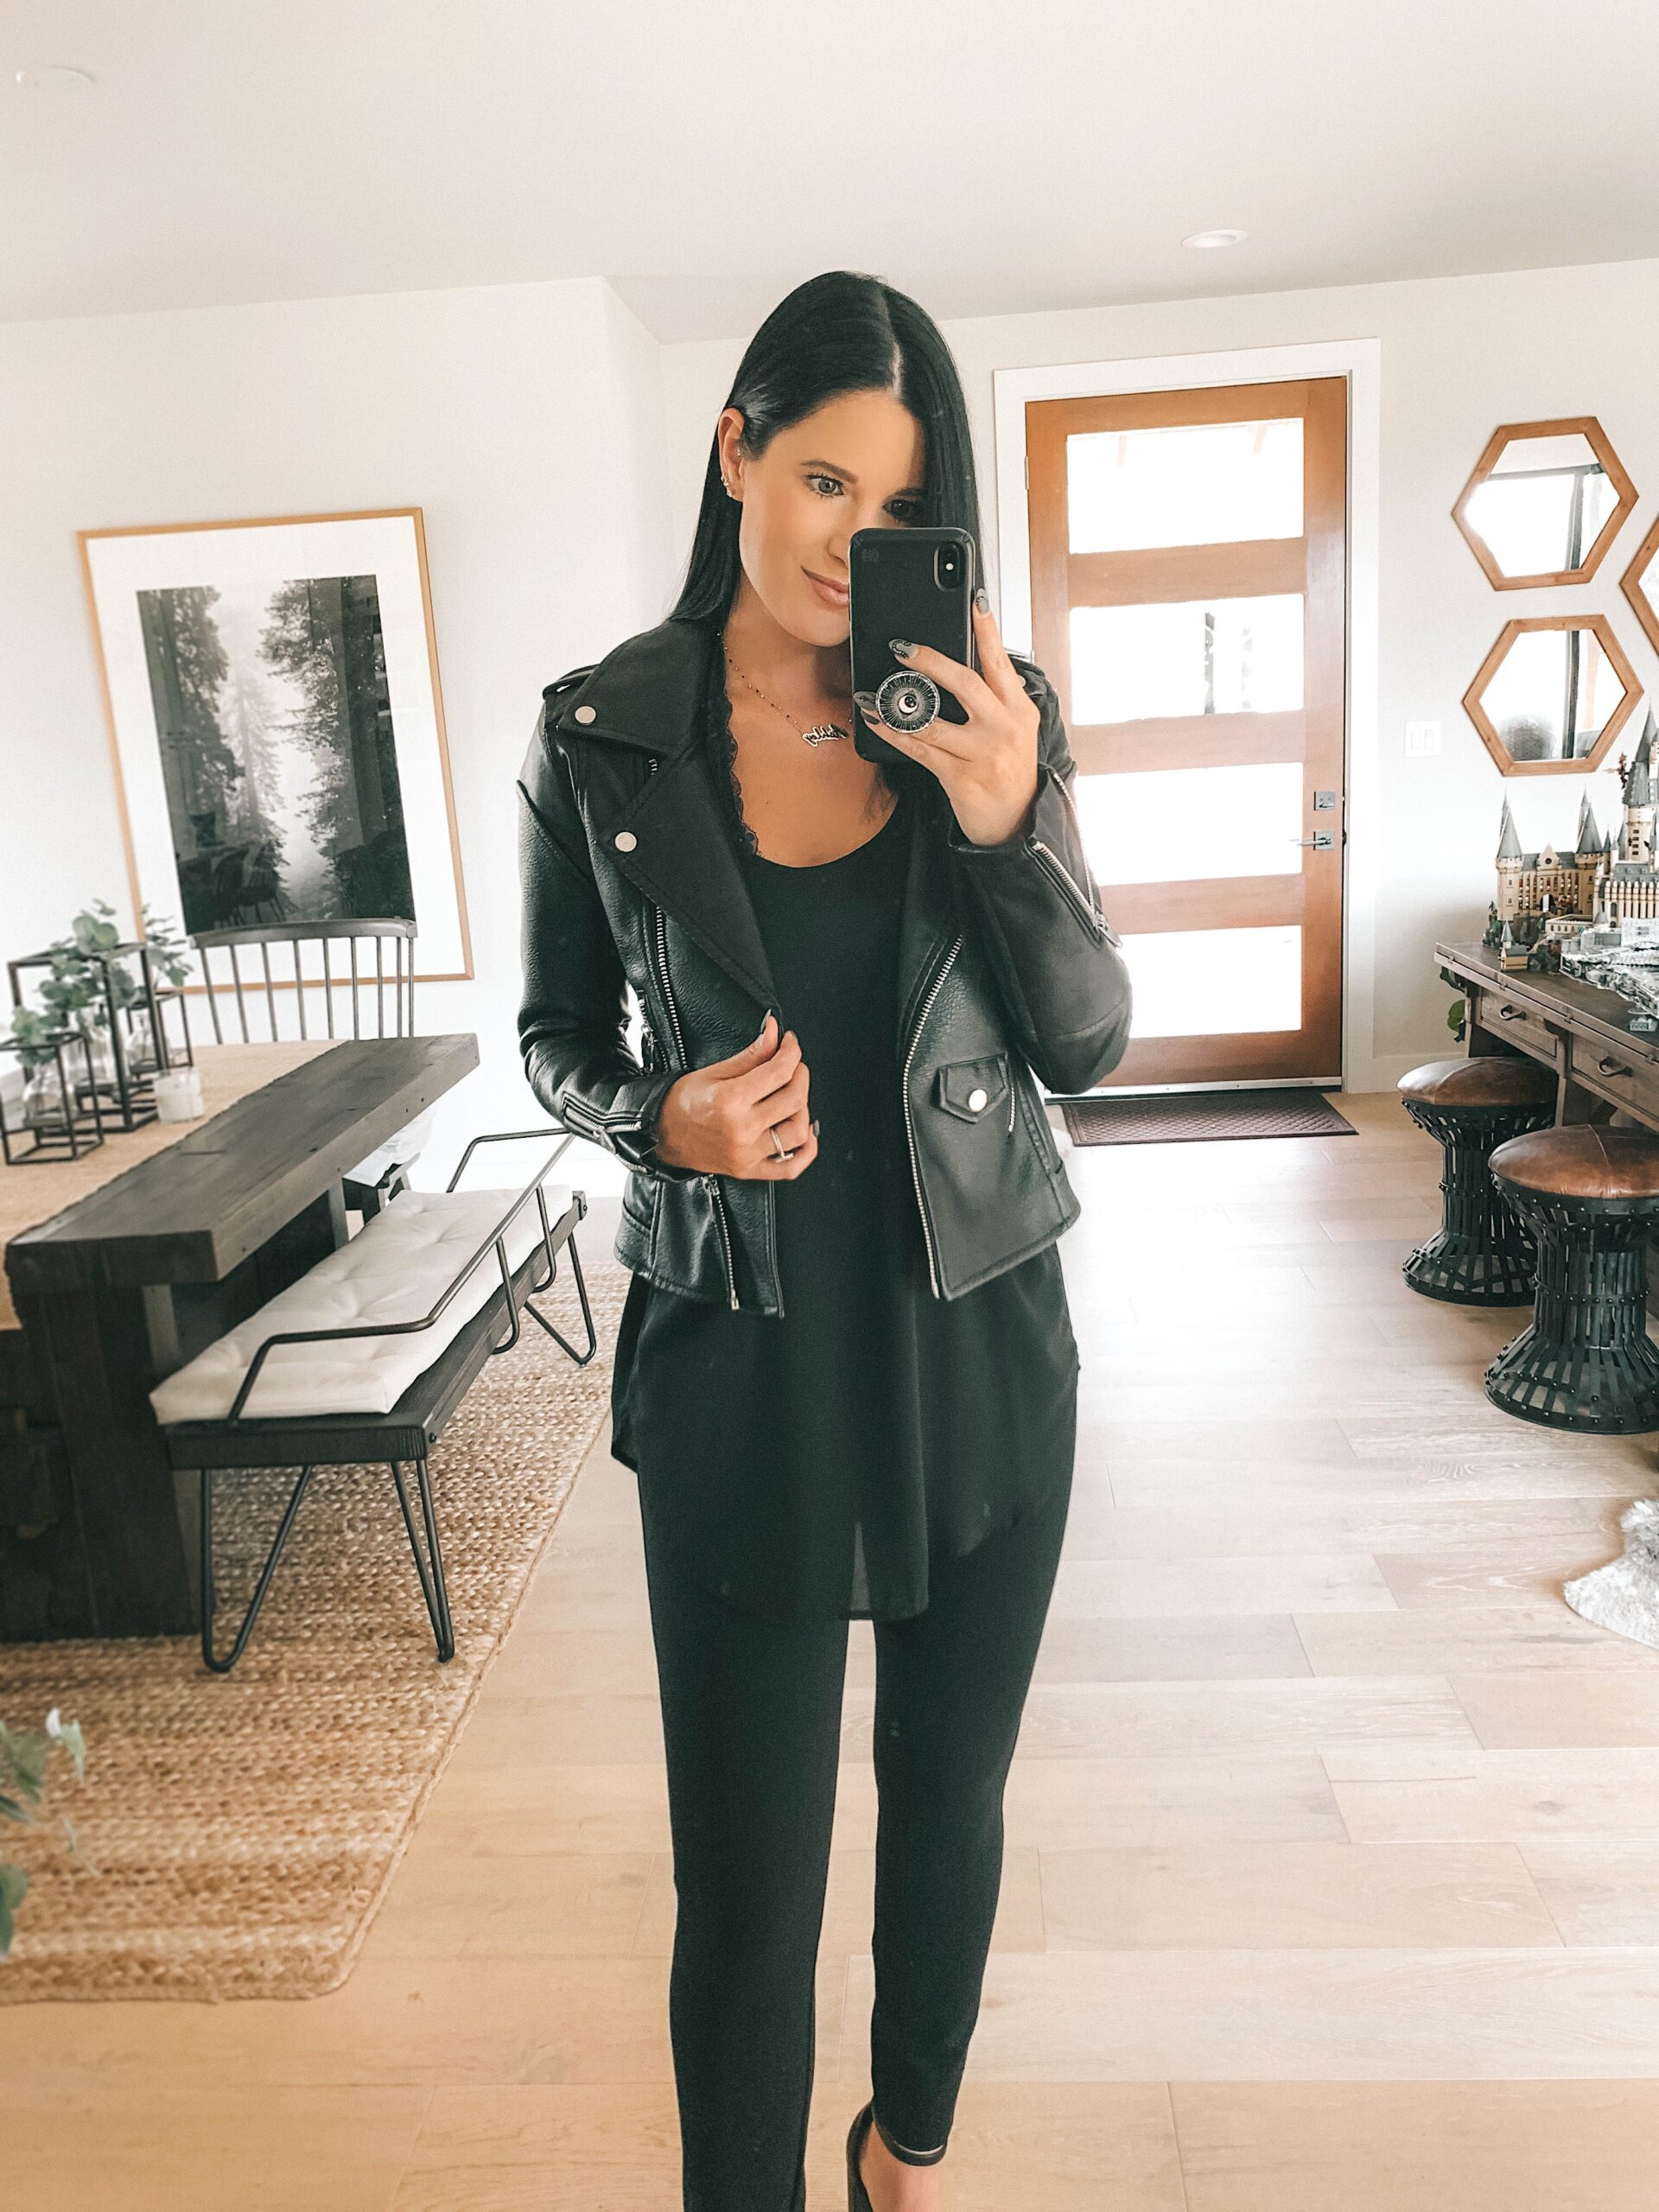 Nordstrom Anniversary Sale by popular Austin fashion blog, Dressed to Kill: image of a woman wearing a black faux leather jacket, black top, and black faux leather leggings.